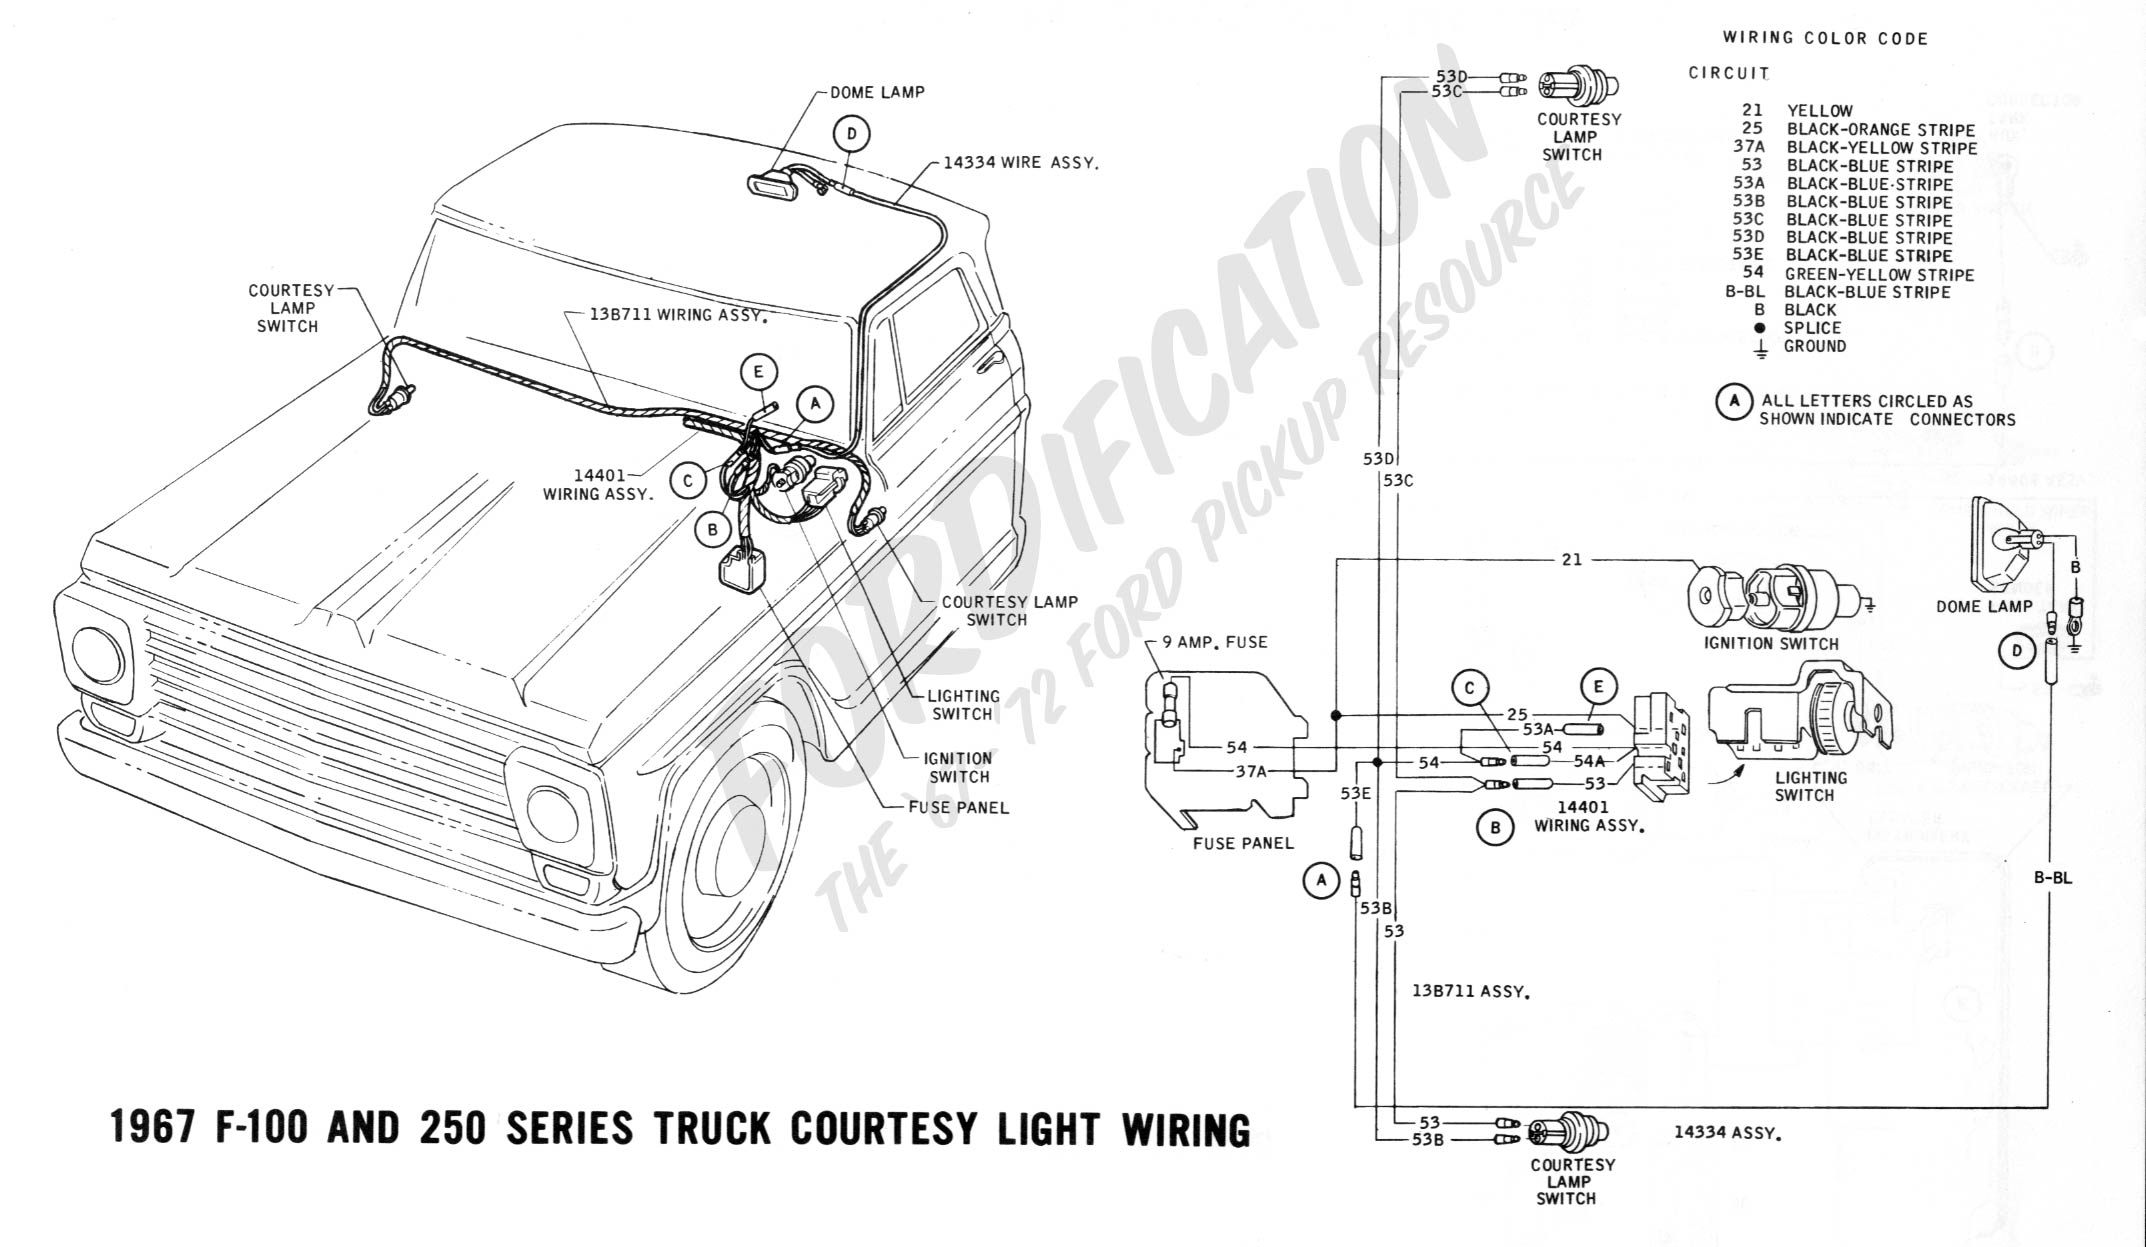 wiring 1967courtesylight wiring in ignition switch in 1966 f100 ford truck enthusiasts forums 2002 F250 Wiring Diagram at gsmx.co